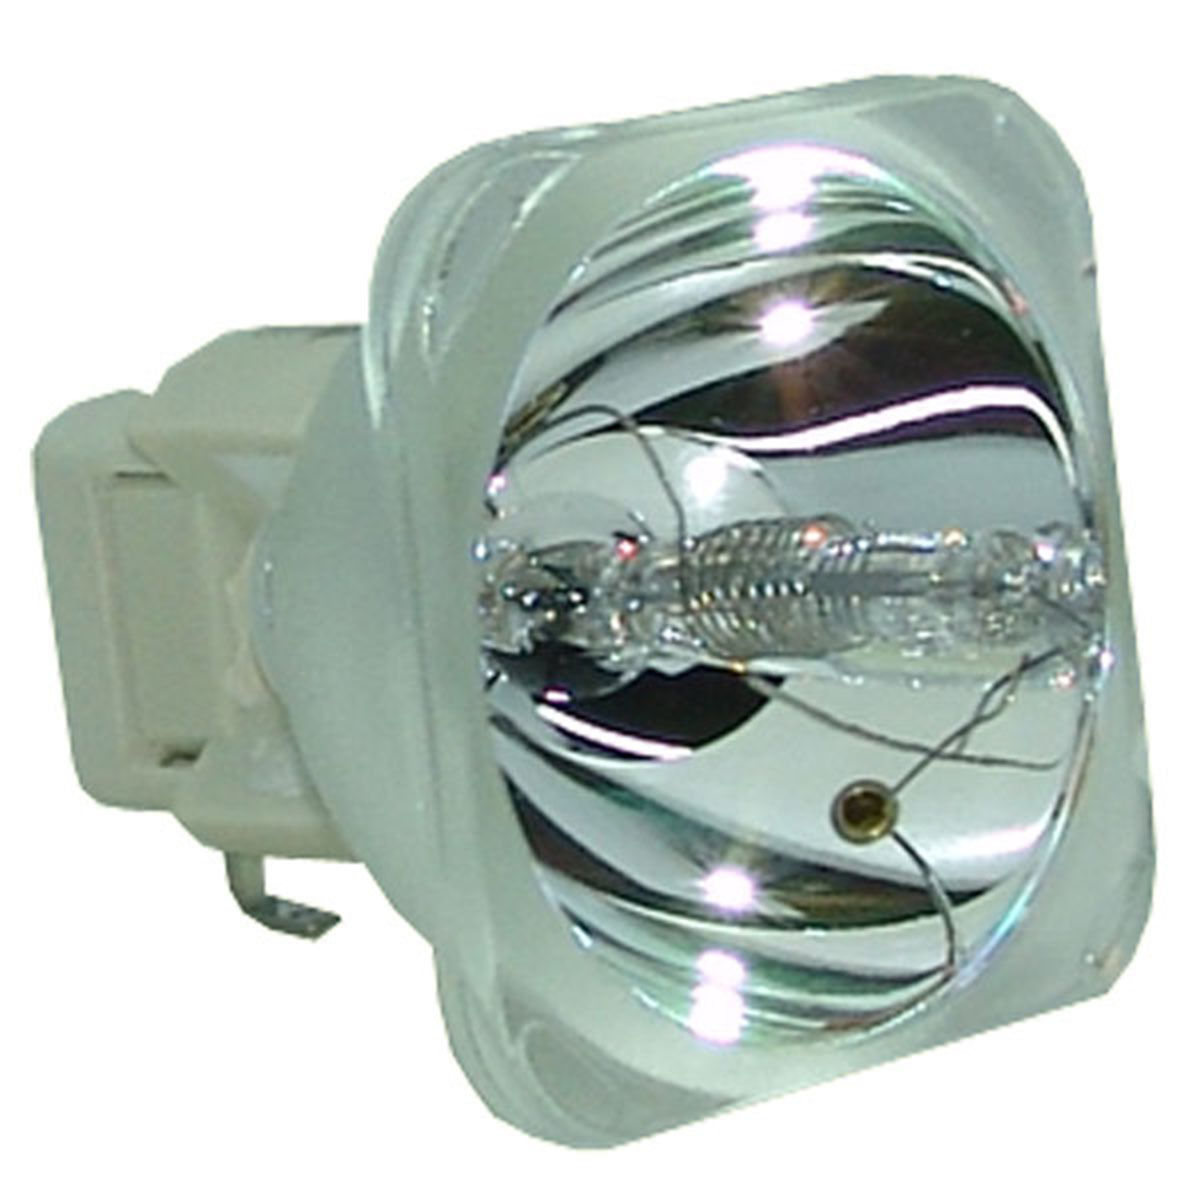 BL-FP230A SP.83R01G.001 for OPTOMA DX608 EP747 EP7475 EP7477 EP7479 EP747A EP747H EP747N EP747T Projector Lamp Bulb Without Case compatible projector lamp for optoma bl fp230a sp 83r01g 001 dx608 ep747 ep7475 ep7477 ep7479 ep747a ep747h ep747n ep747t